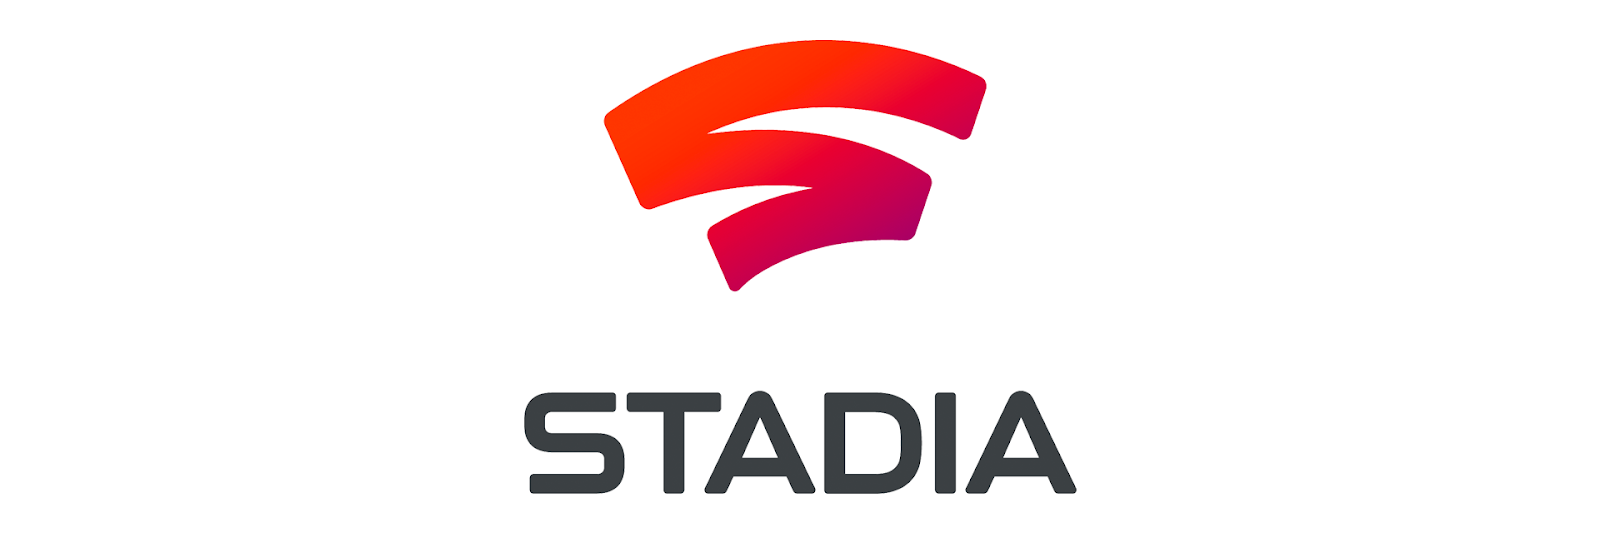 Welcome to Stadia Image